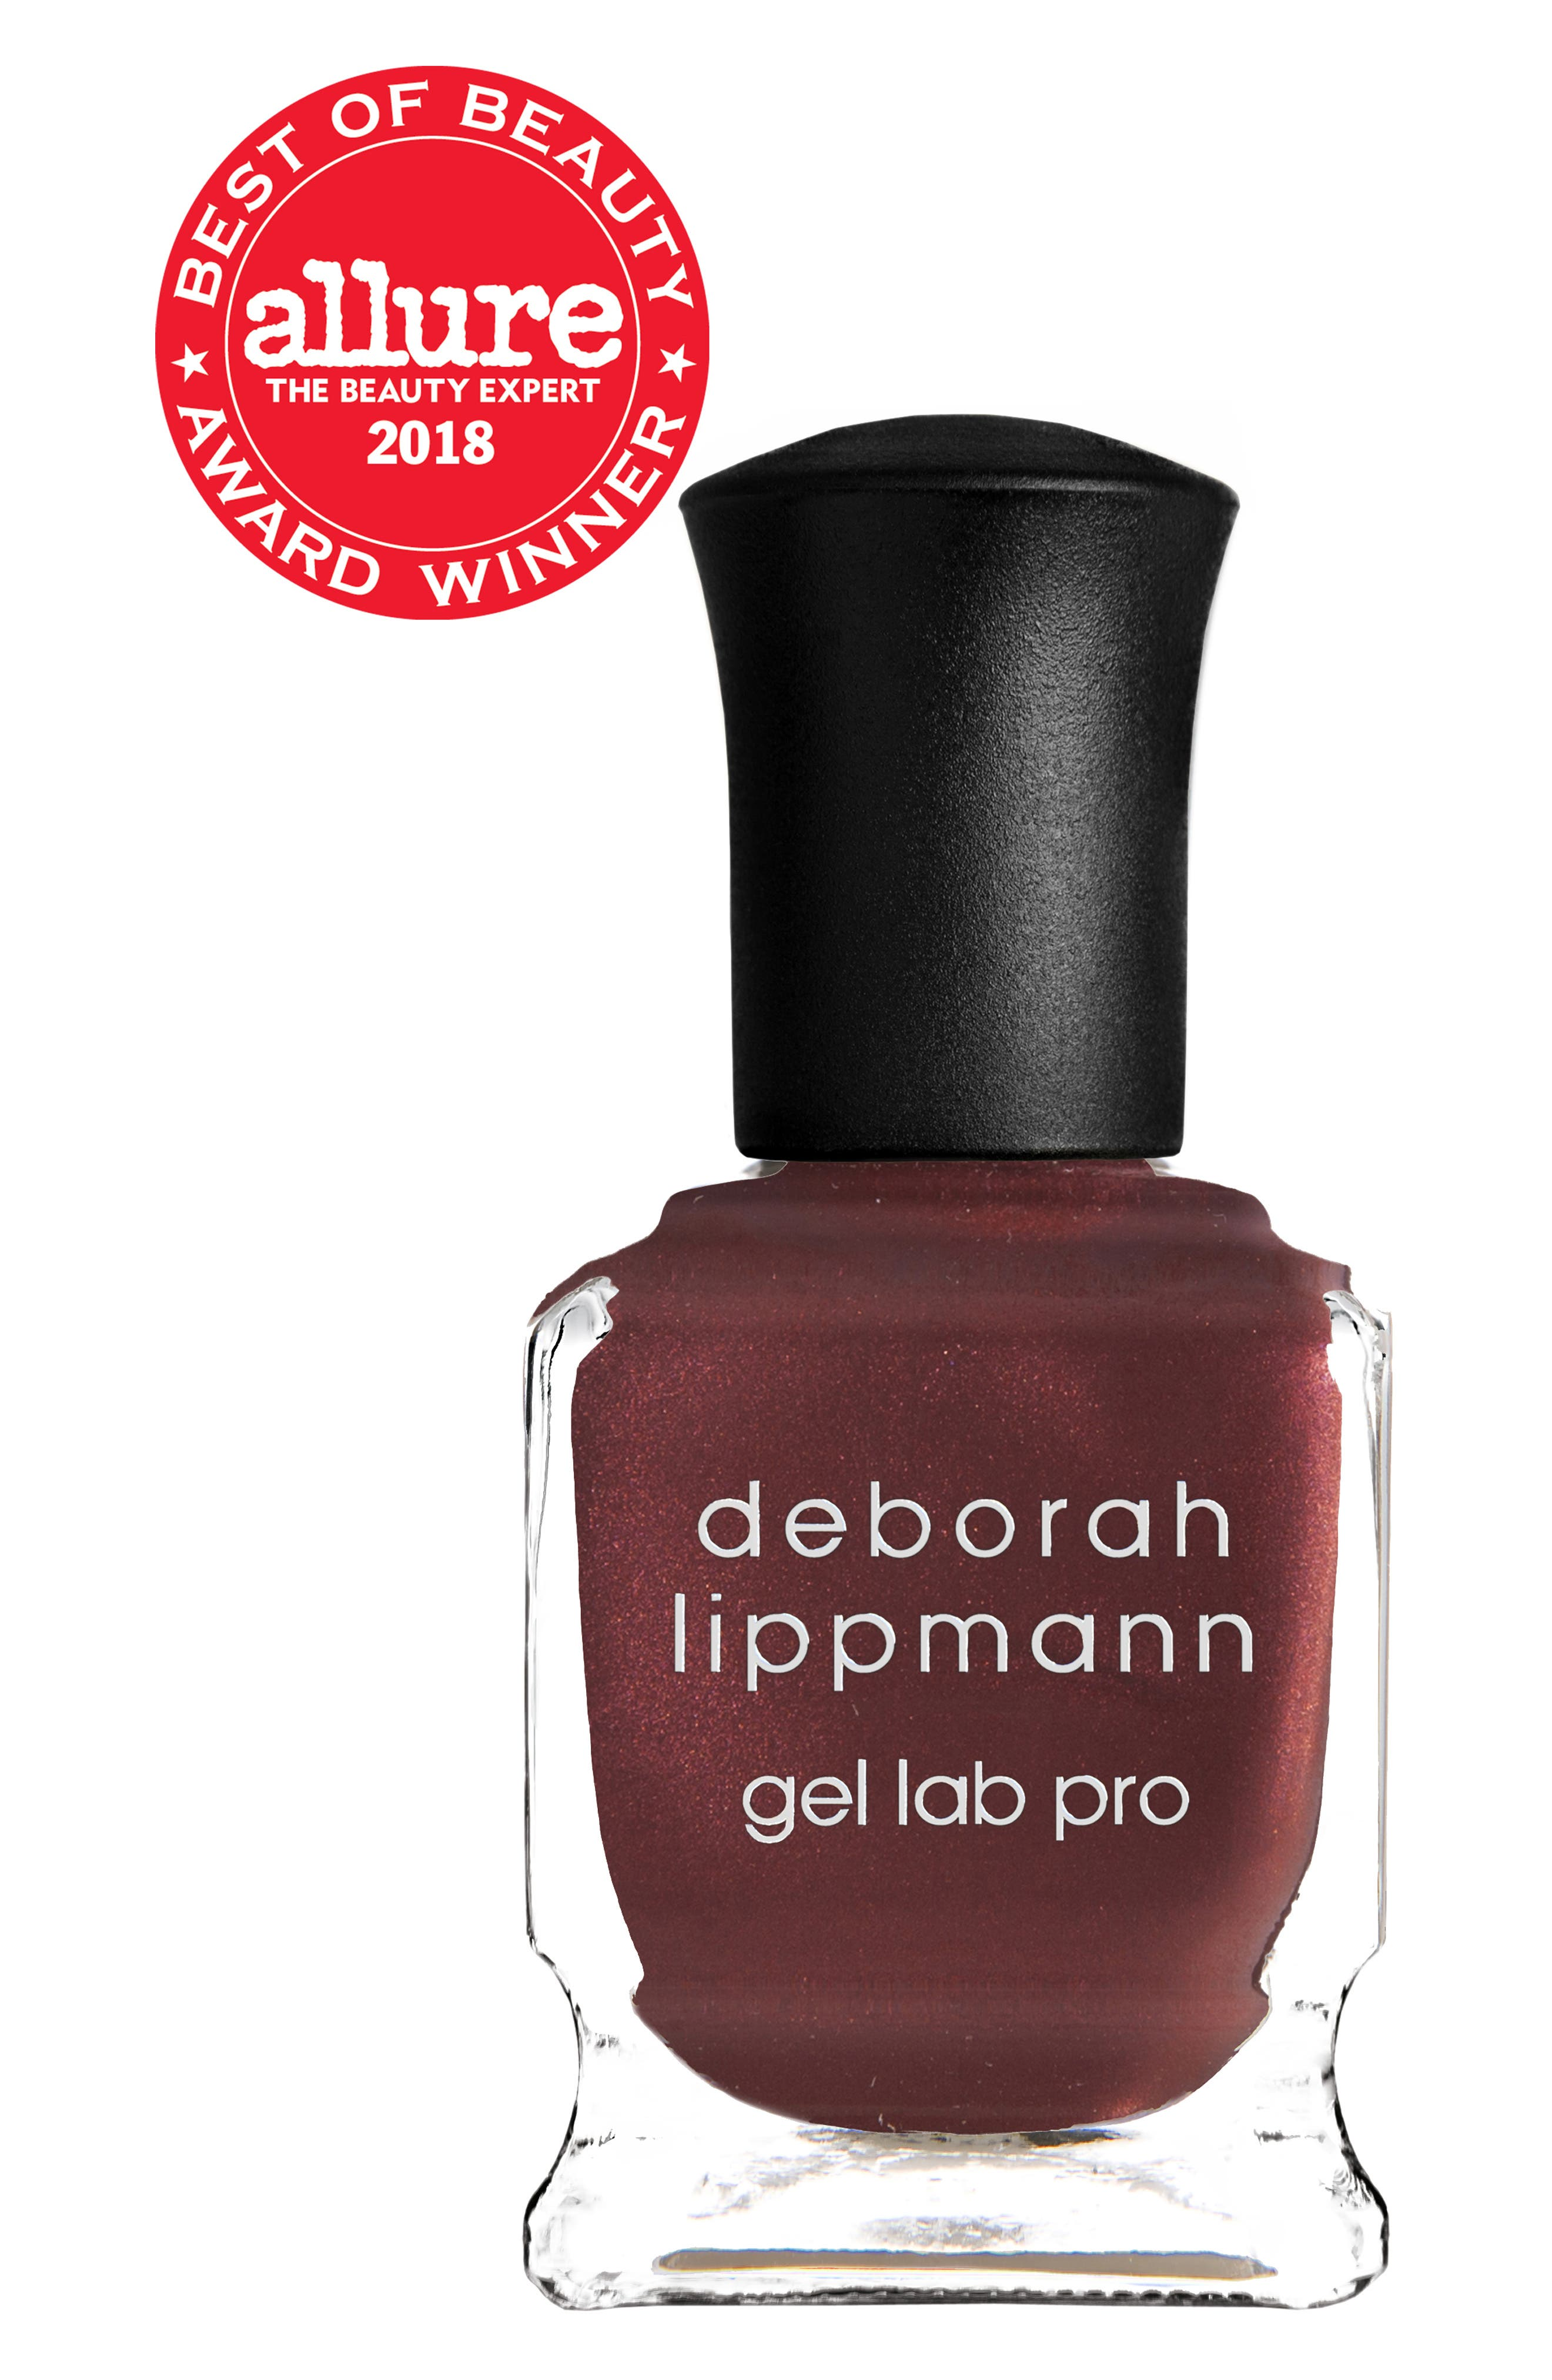 DEBORAH LIPPMANN, All Fired Up Gel Lab Pro Nail Color, Alternate thumbnail 2, color, YOU OUGHTA KNOW GLP